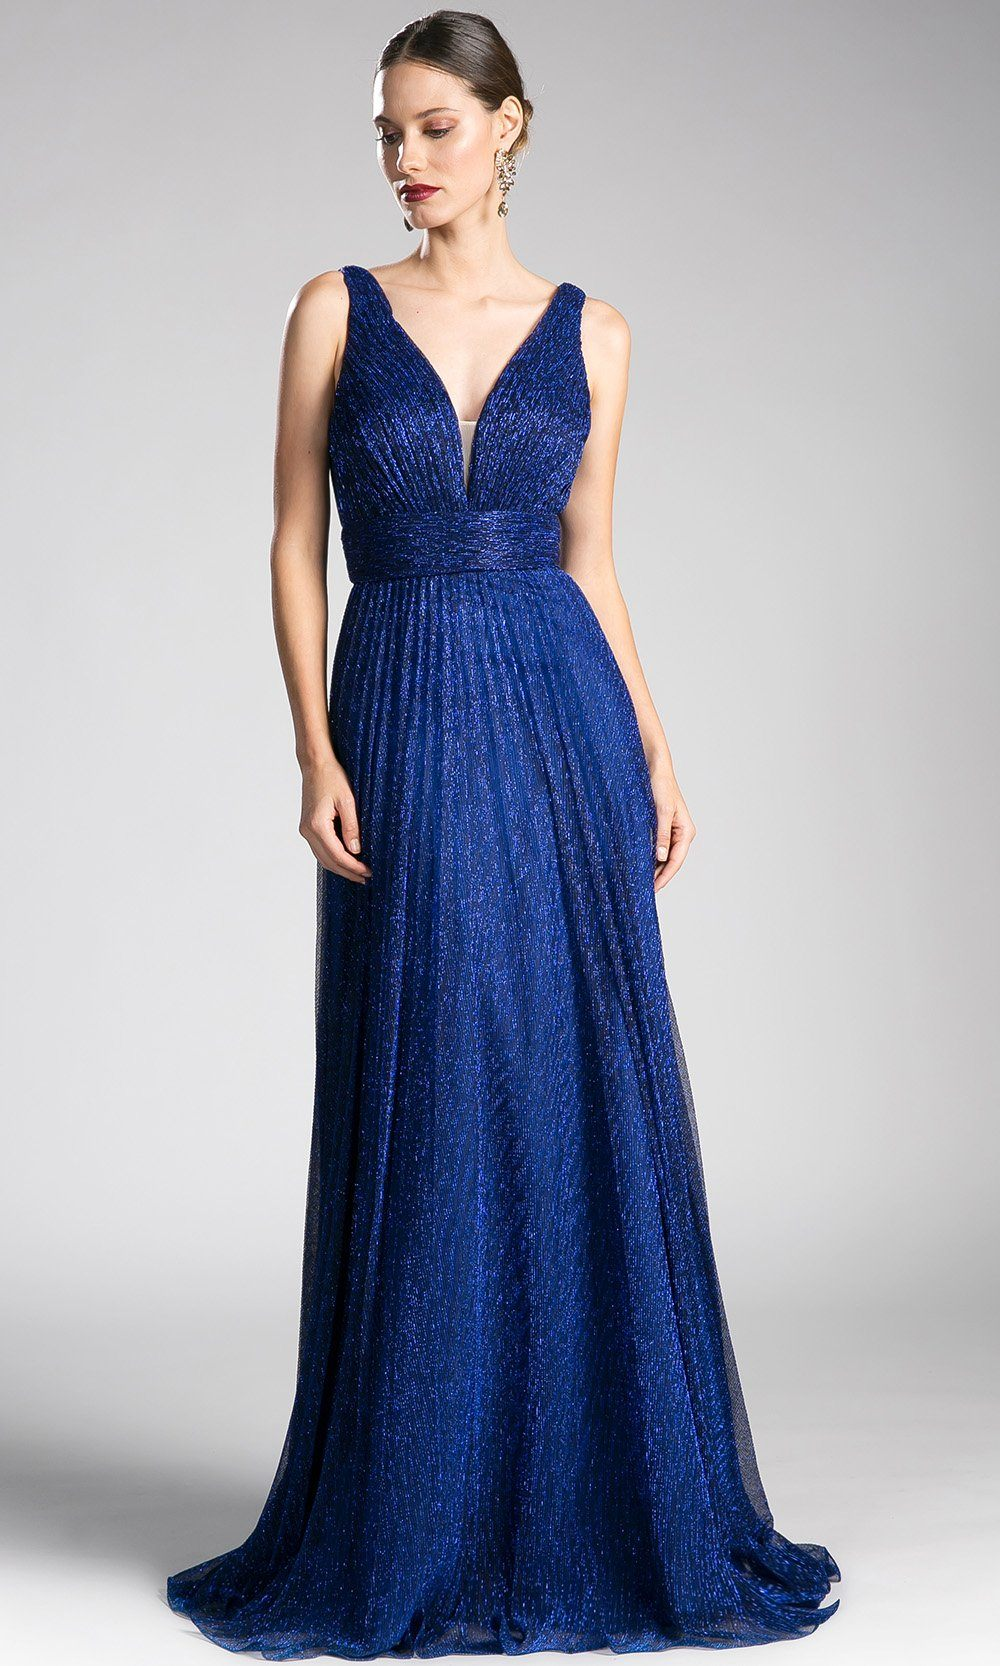 Long royal blue flowy crinkle dress with v neck.This low cut v neck is sleek and sexy with a-line skirt. Perfect dark blue dress for bridesmaid dresses,gala, wedding guest dress,evening formal party.Plus sizes avail